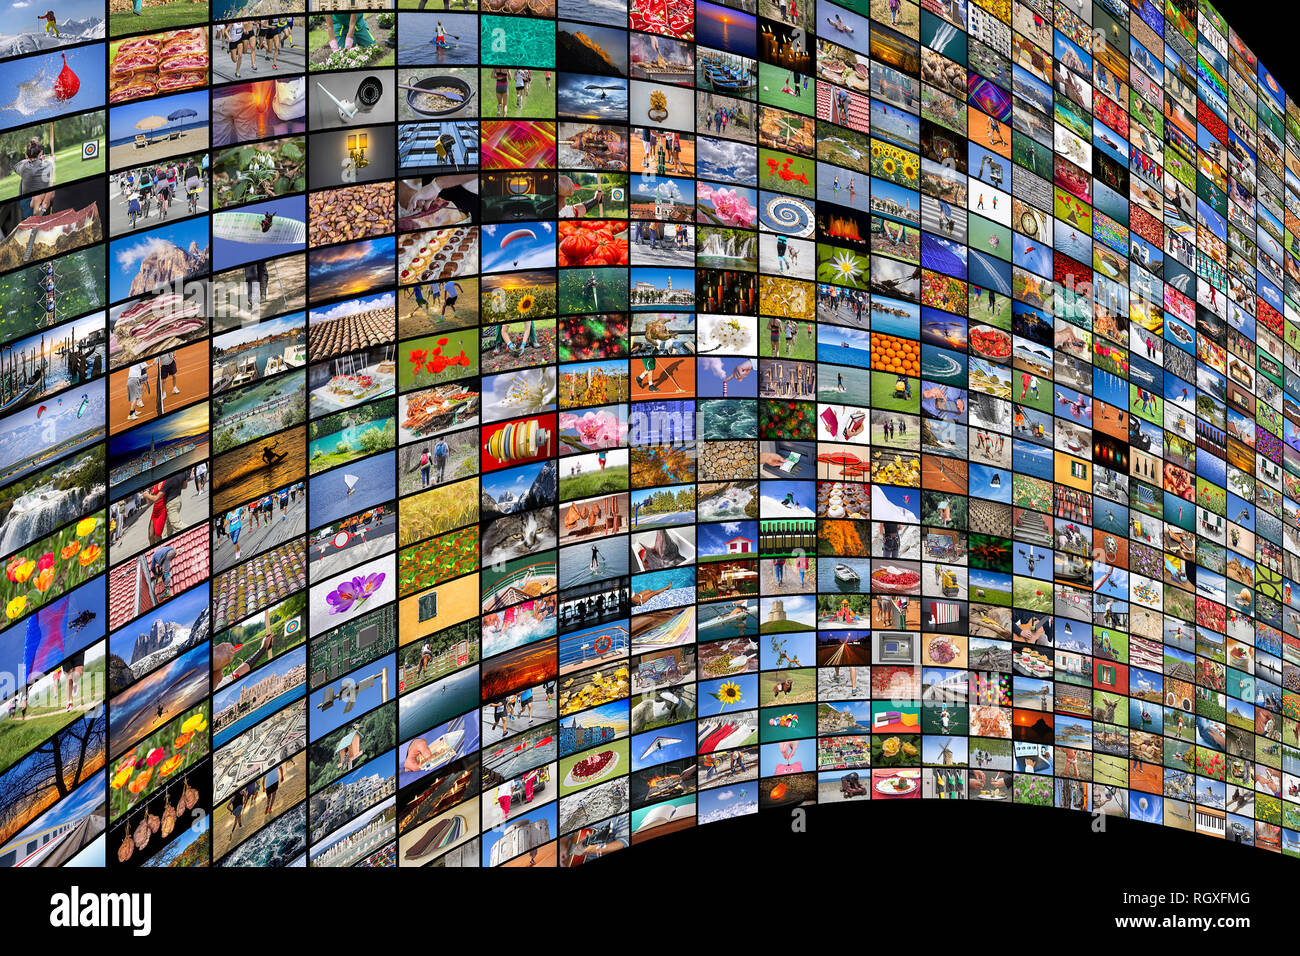 Giant multimedia widescreen video and image walls - Stock Image